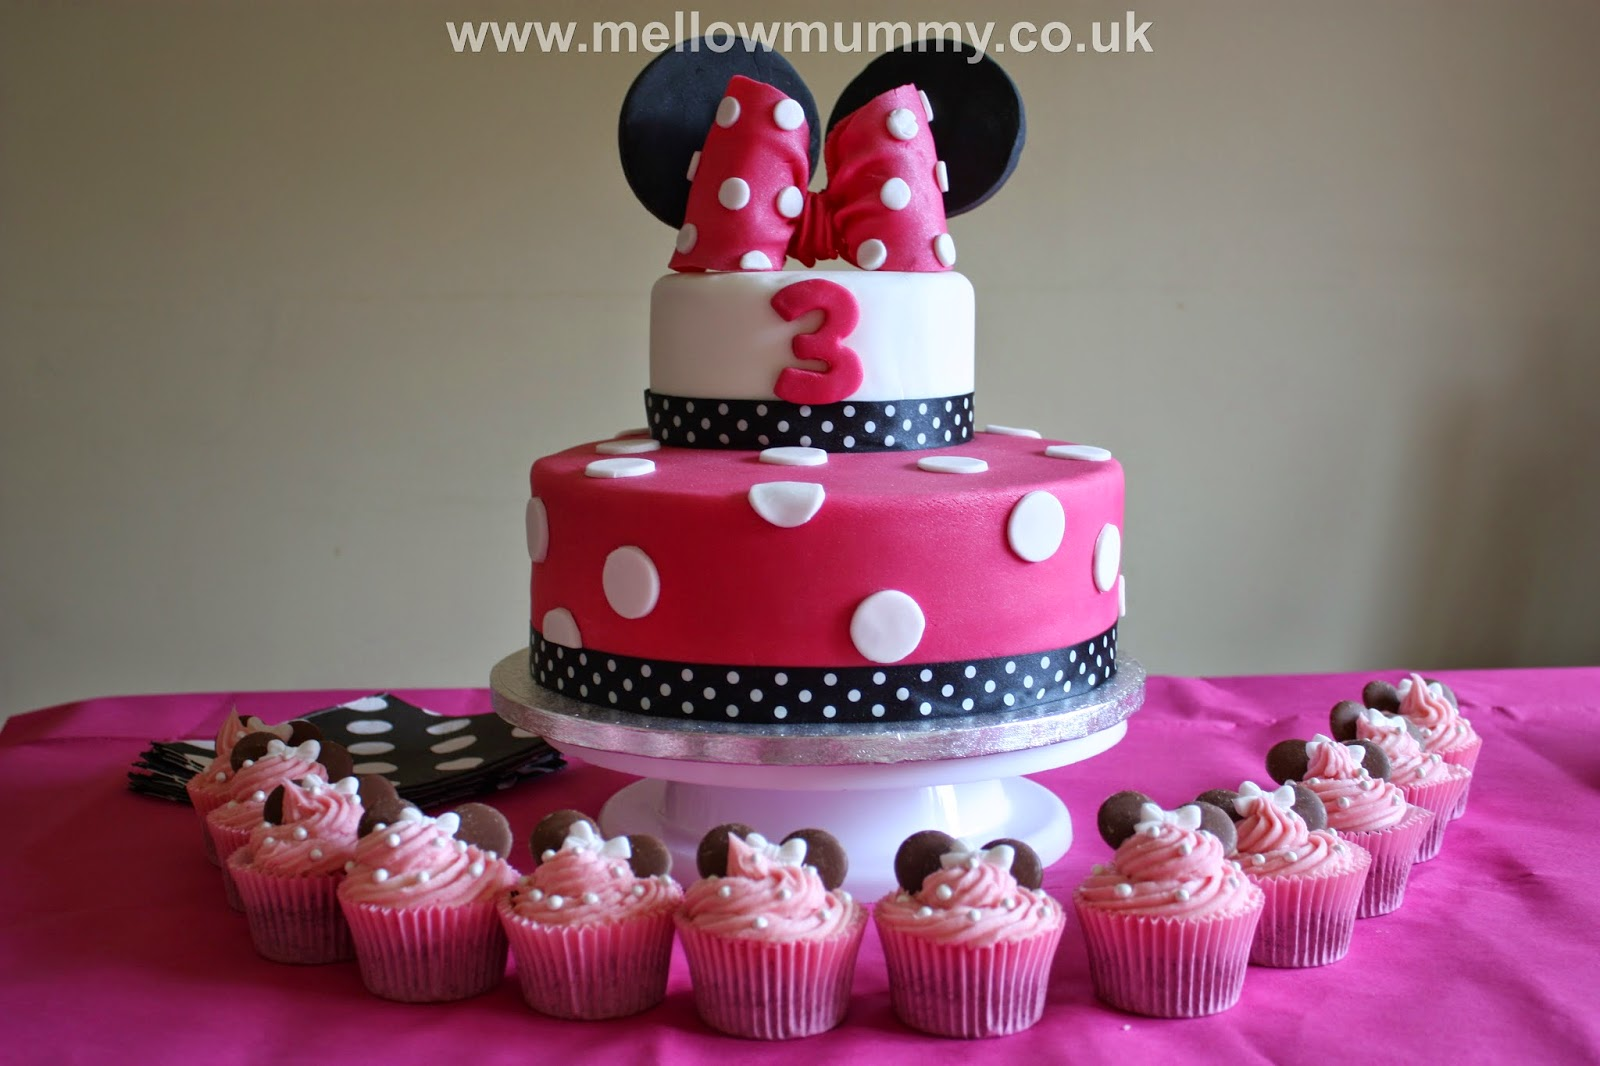 Mellow Mummy The One With The Spotty Minnie Mouse Birthday Cake